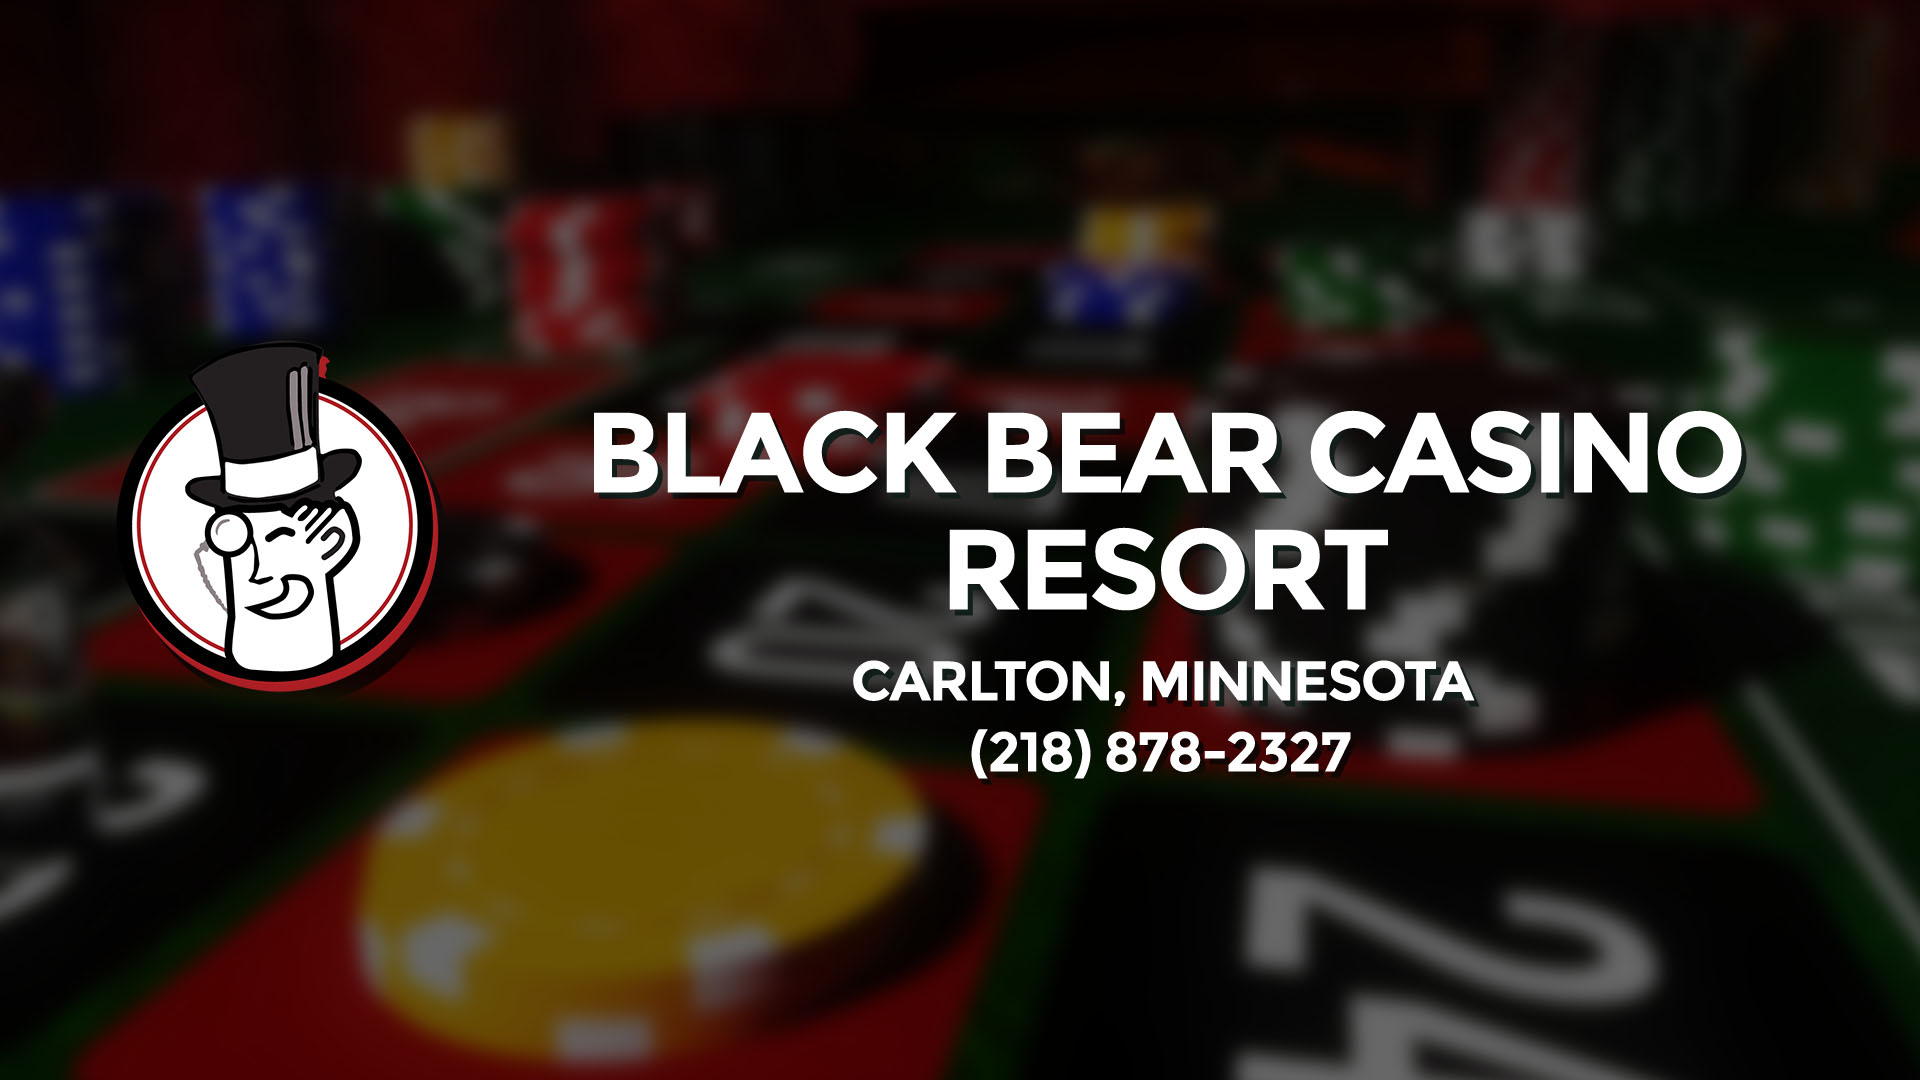 BLACK BEAR CASINO RESORT CARLTON MN